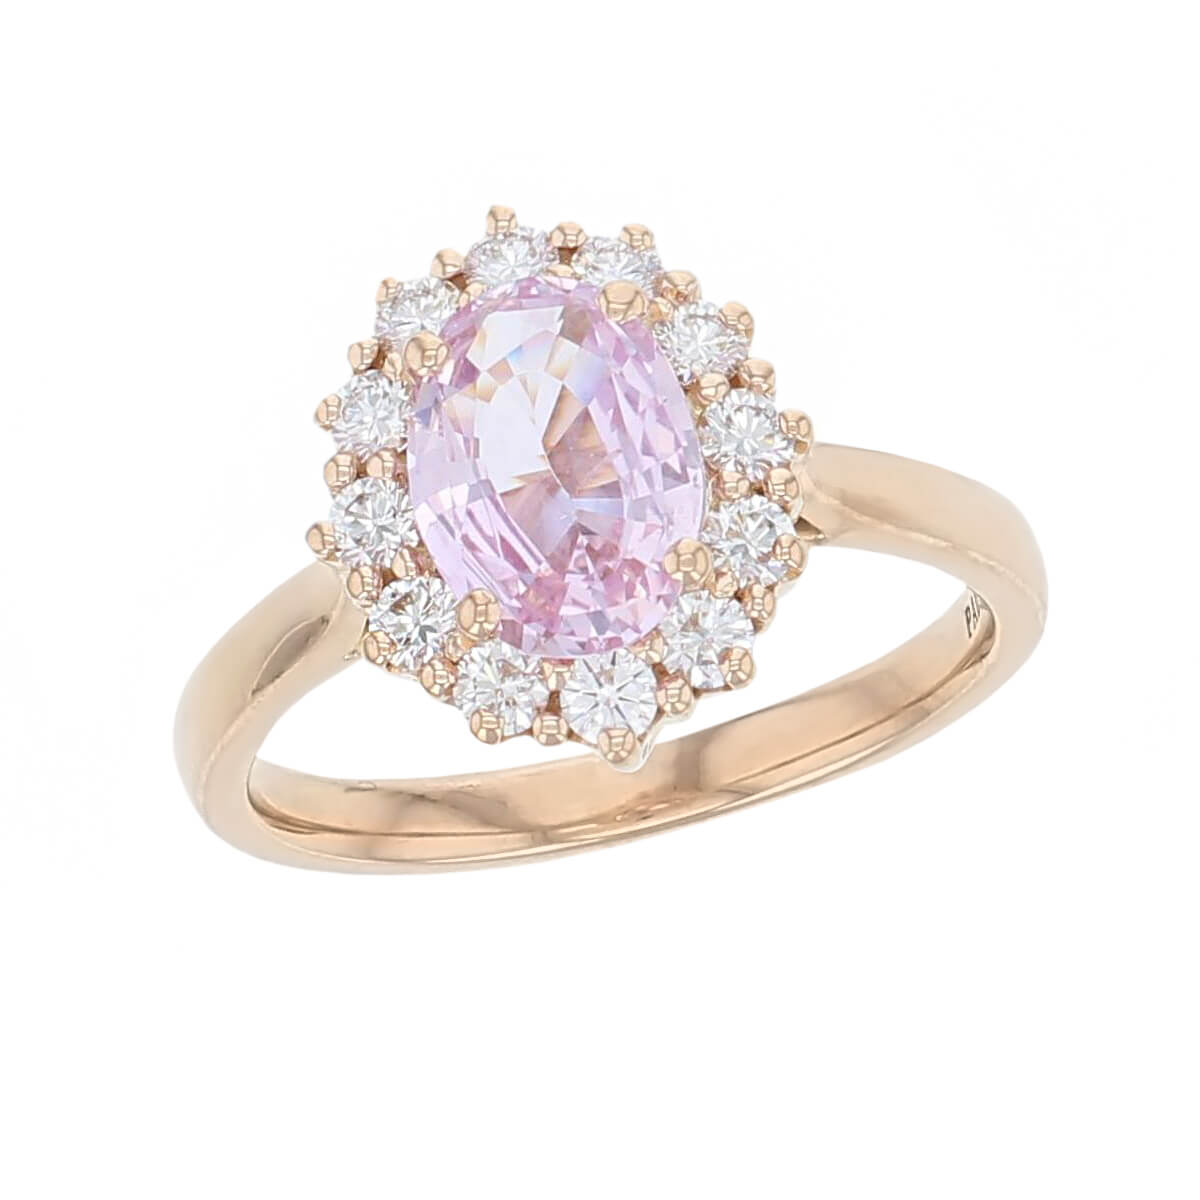 Padparadscha Sapphire Diamond 18ct Rose Gold Cluster Ring Faller Derry Jewellers,Modern White Kitchen Cabinets With Grey Countertops